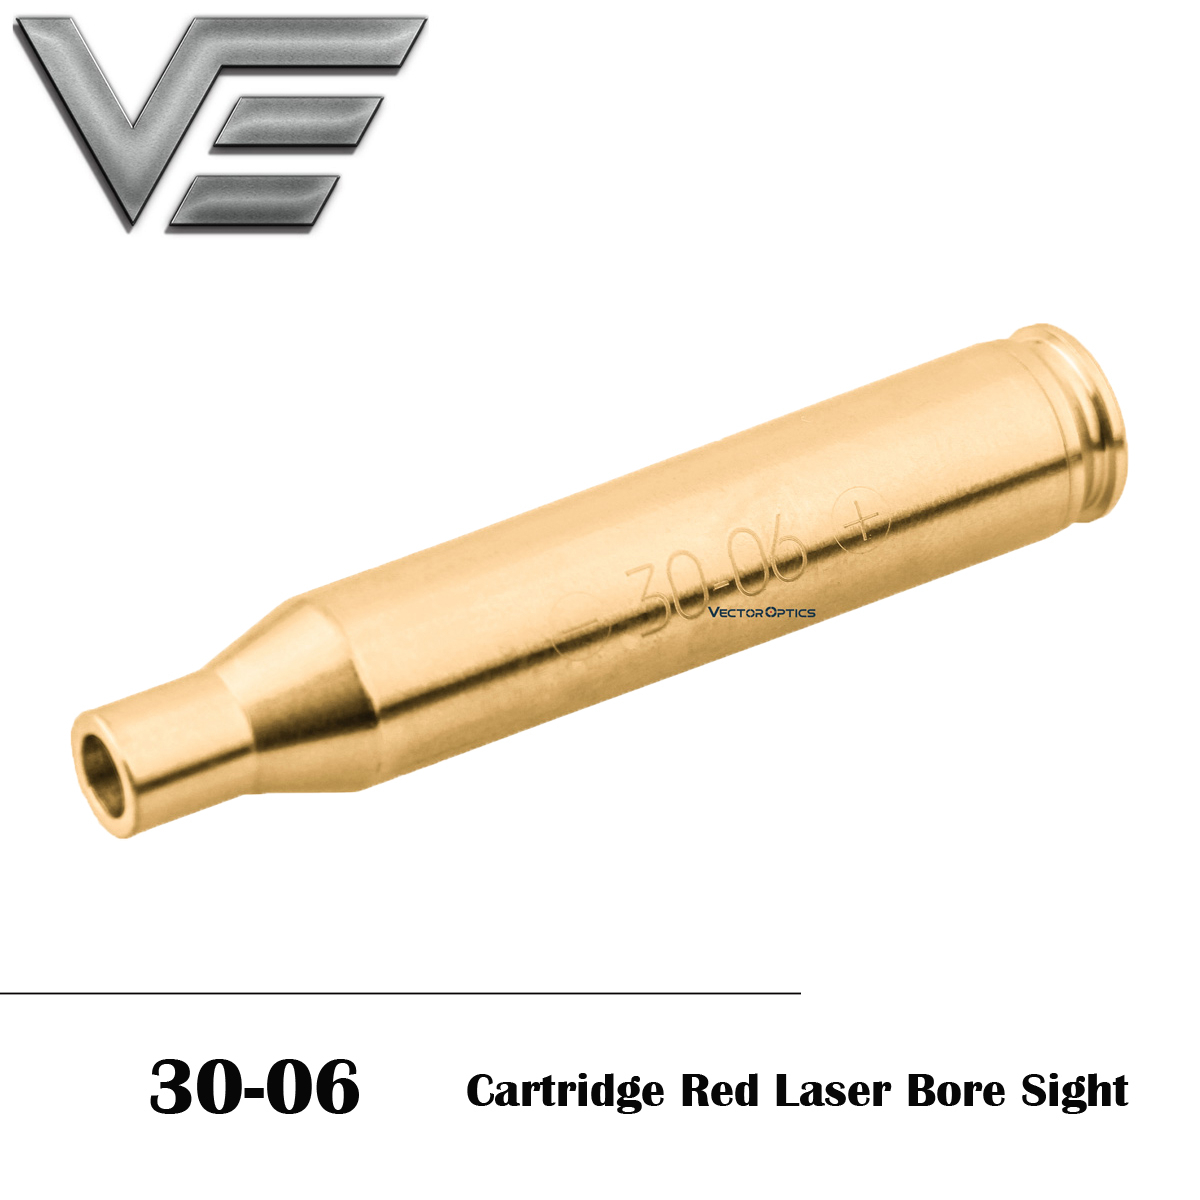 Vector Optics 30-06, 25-06 Rem, 270 Win Cartridge Red Laser Bore Sight Tactical Accuracy Laser Boresighter AG3 Battery For Rifle